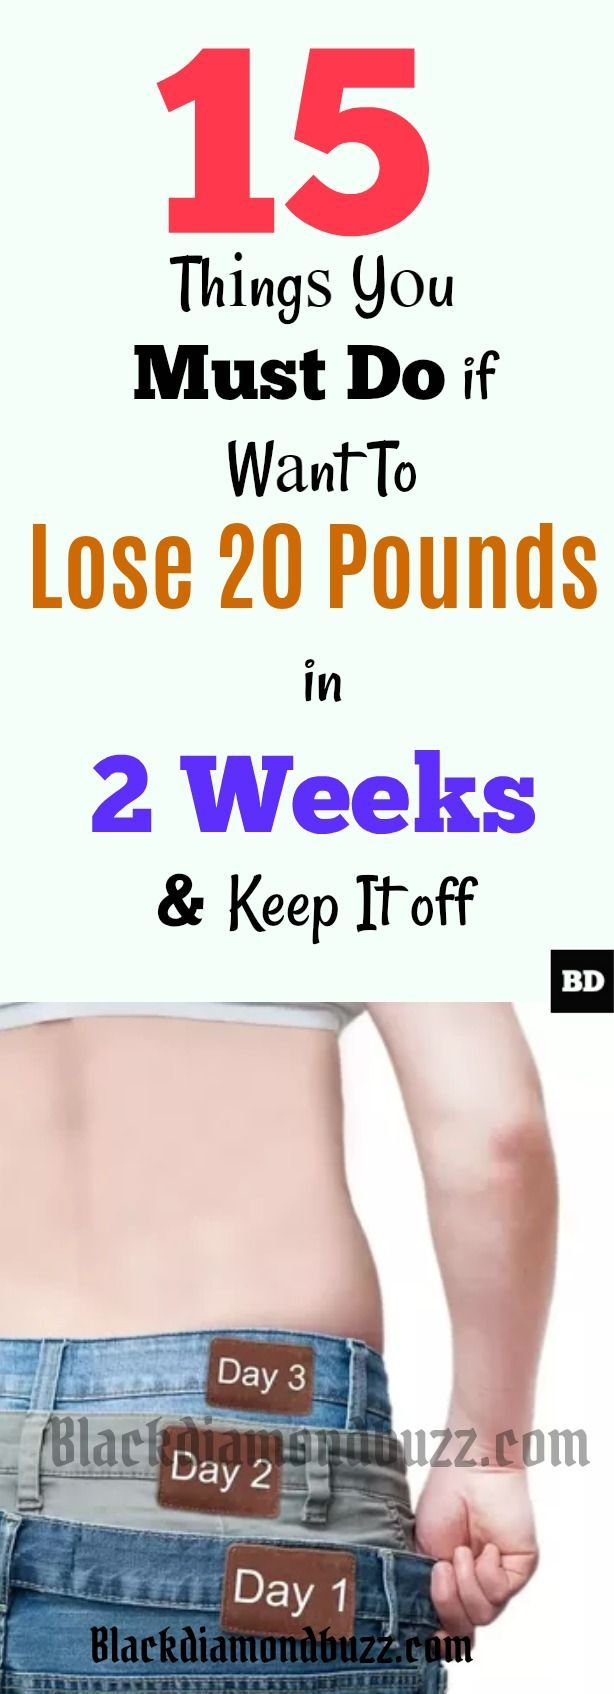 7 day diet plan lose 10 pounds picture 8